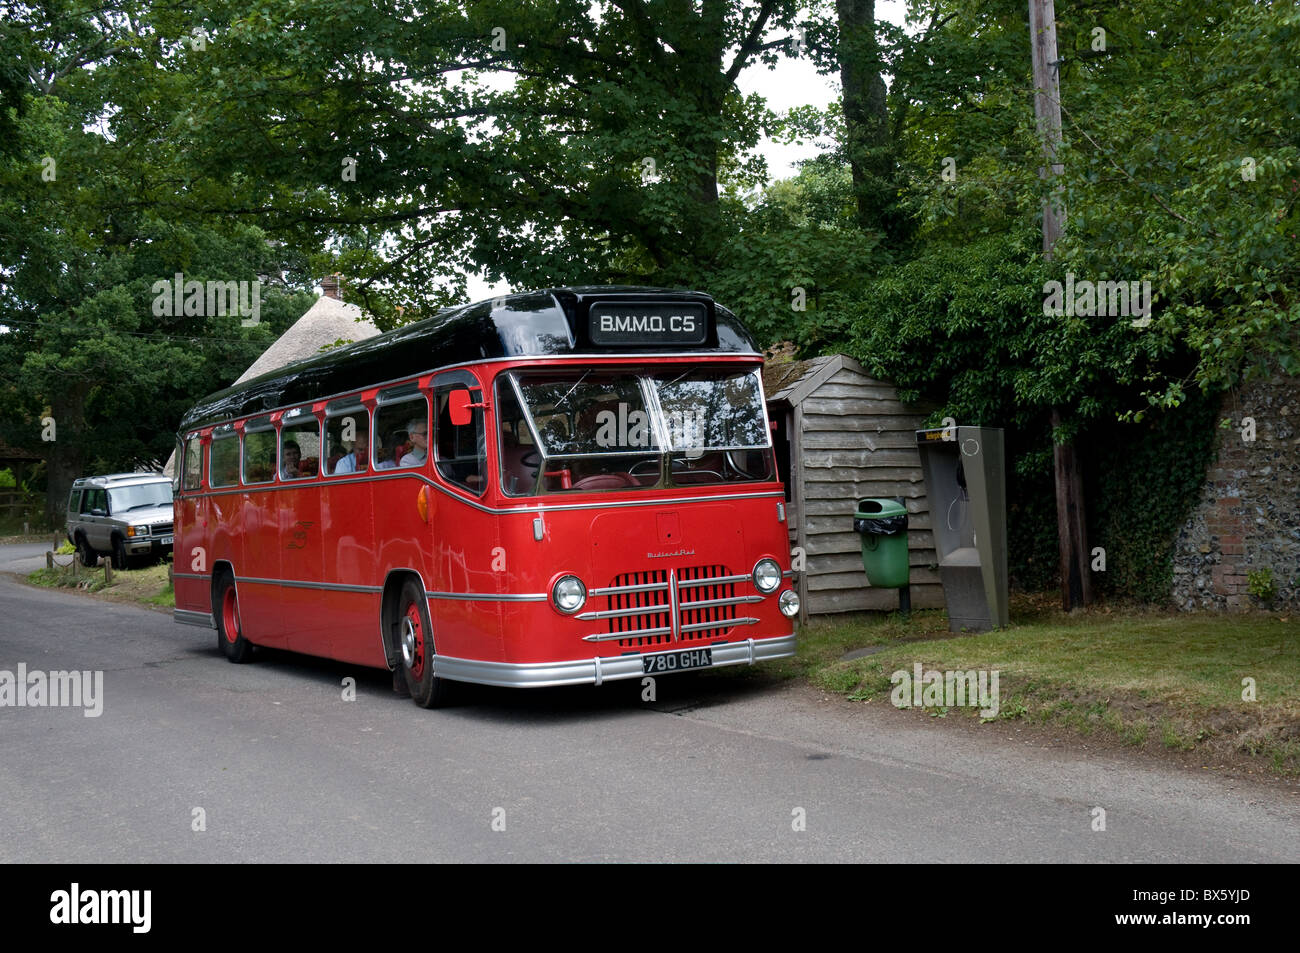 A preserved Midland Red C5 coach takes a break in countryside while giving a ride to attendees of a Bus Rally. Stock Photo